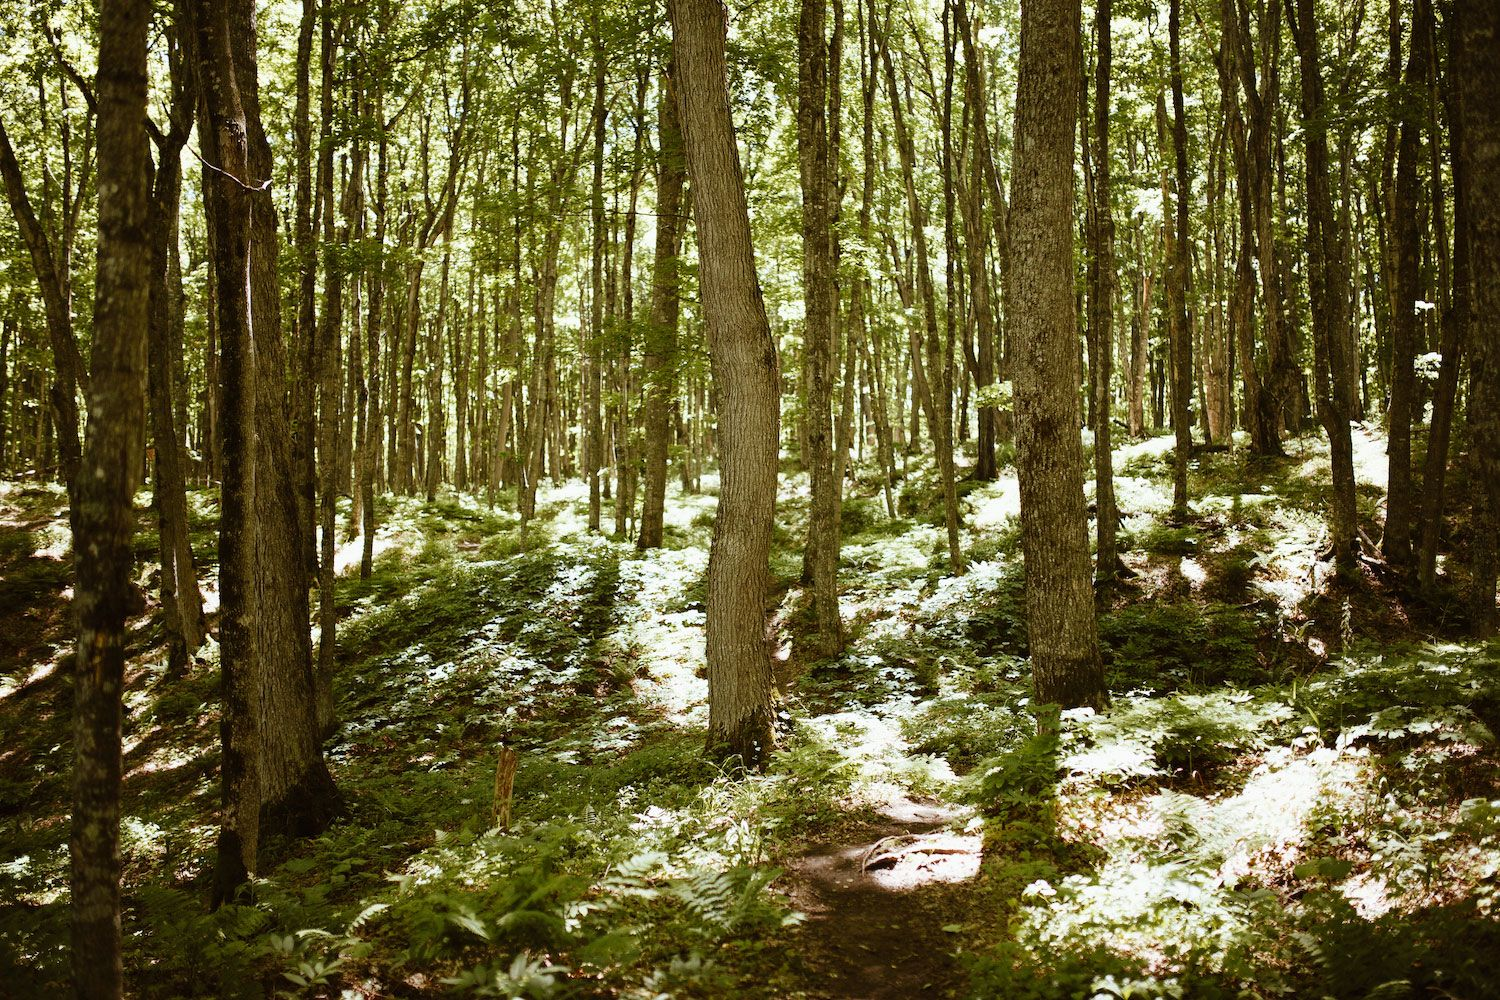 You'll find hiking trails through beautiful forests in the Northwoods of Wisconsin.